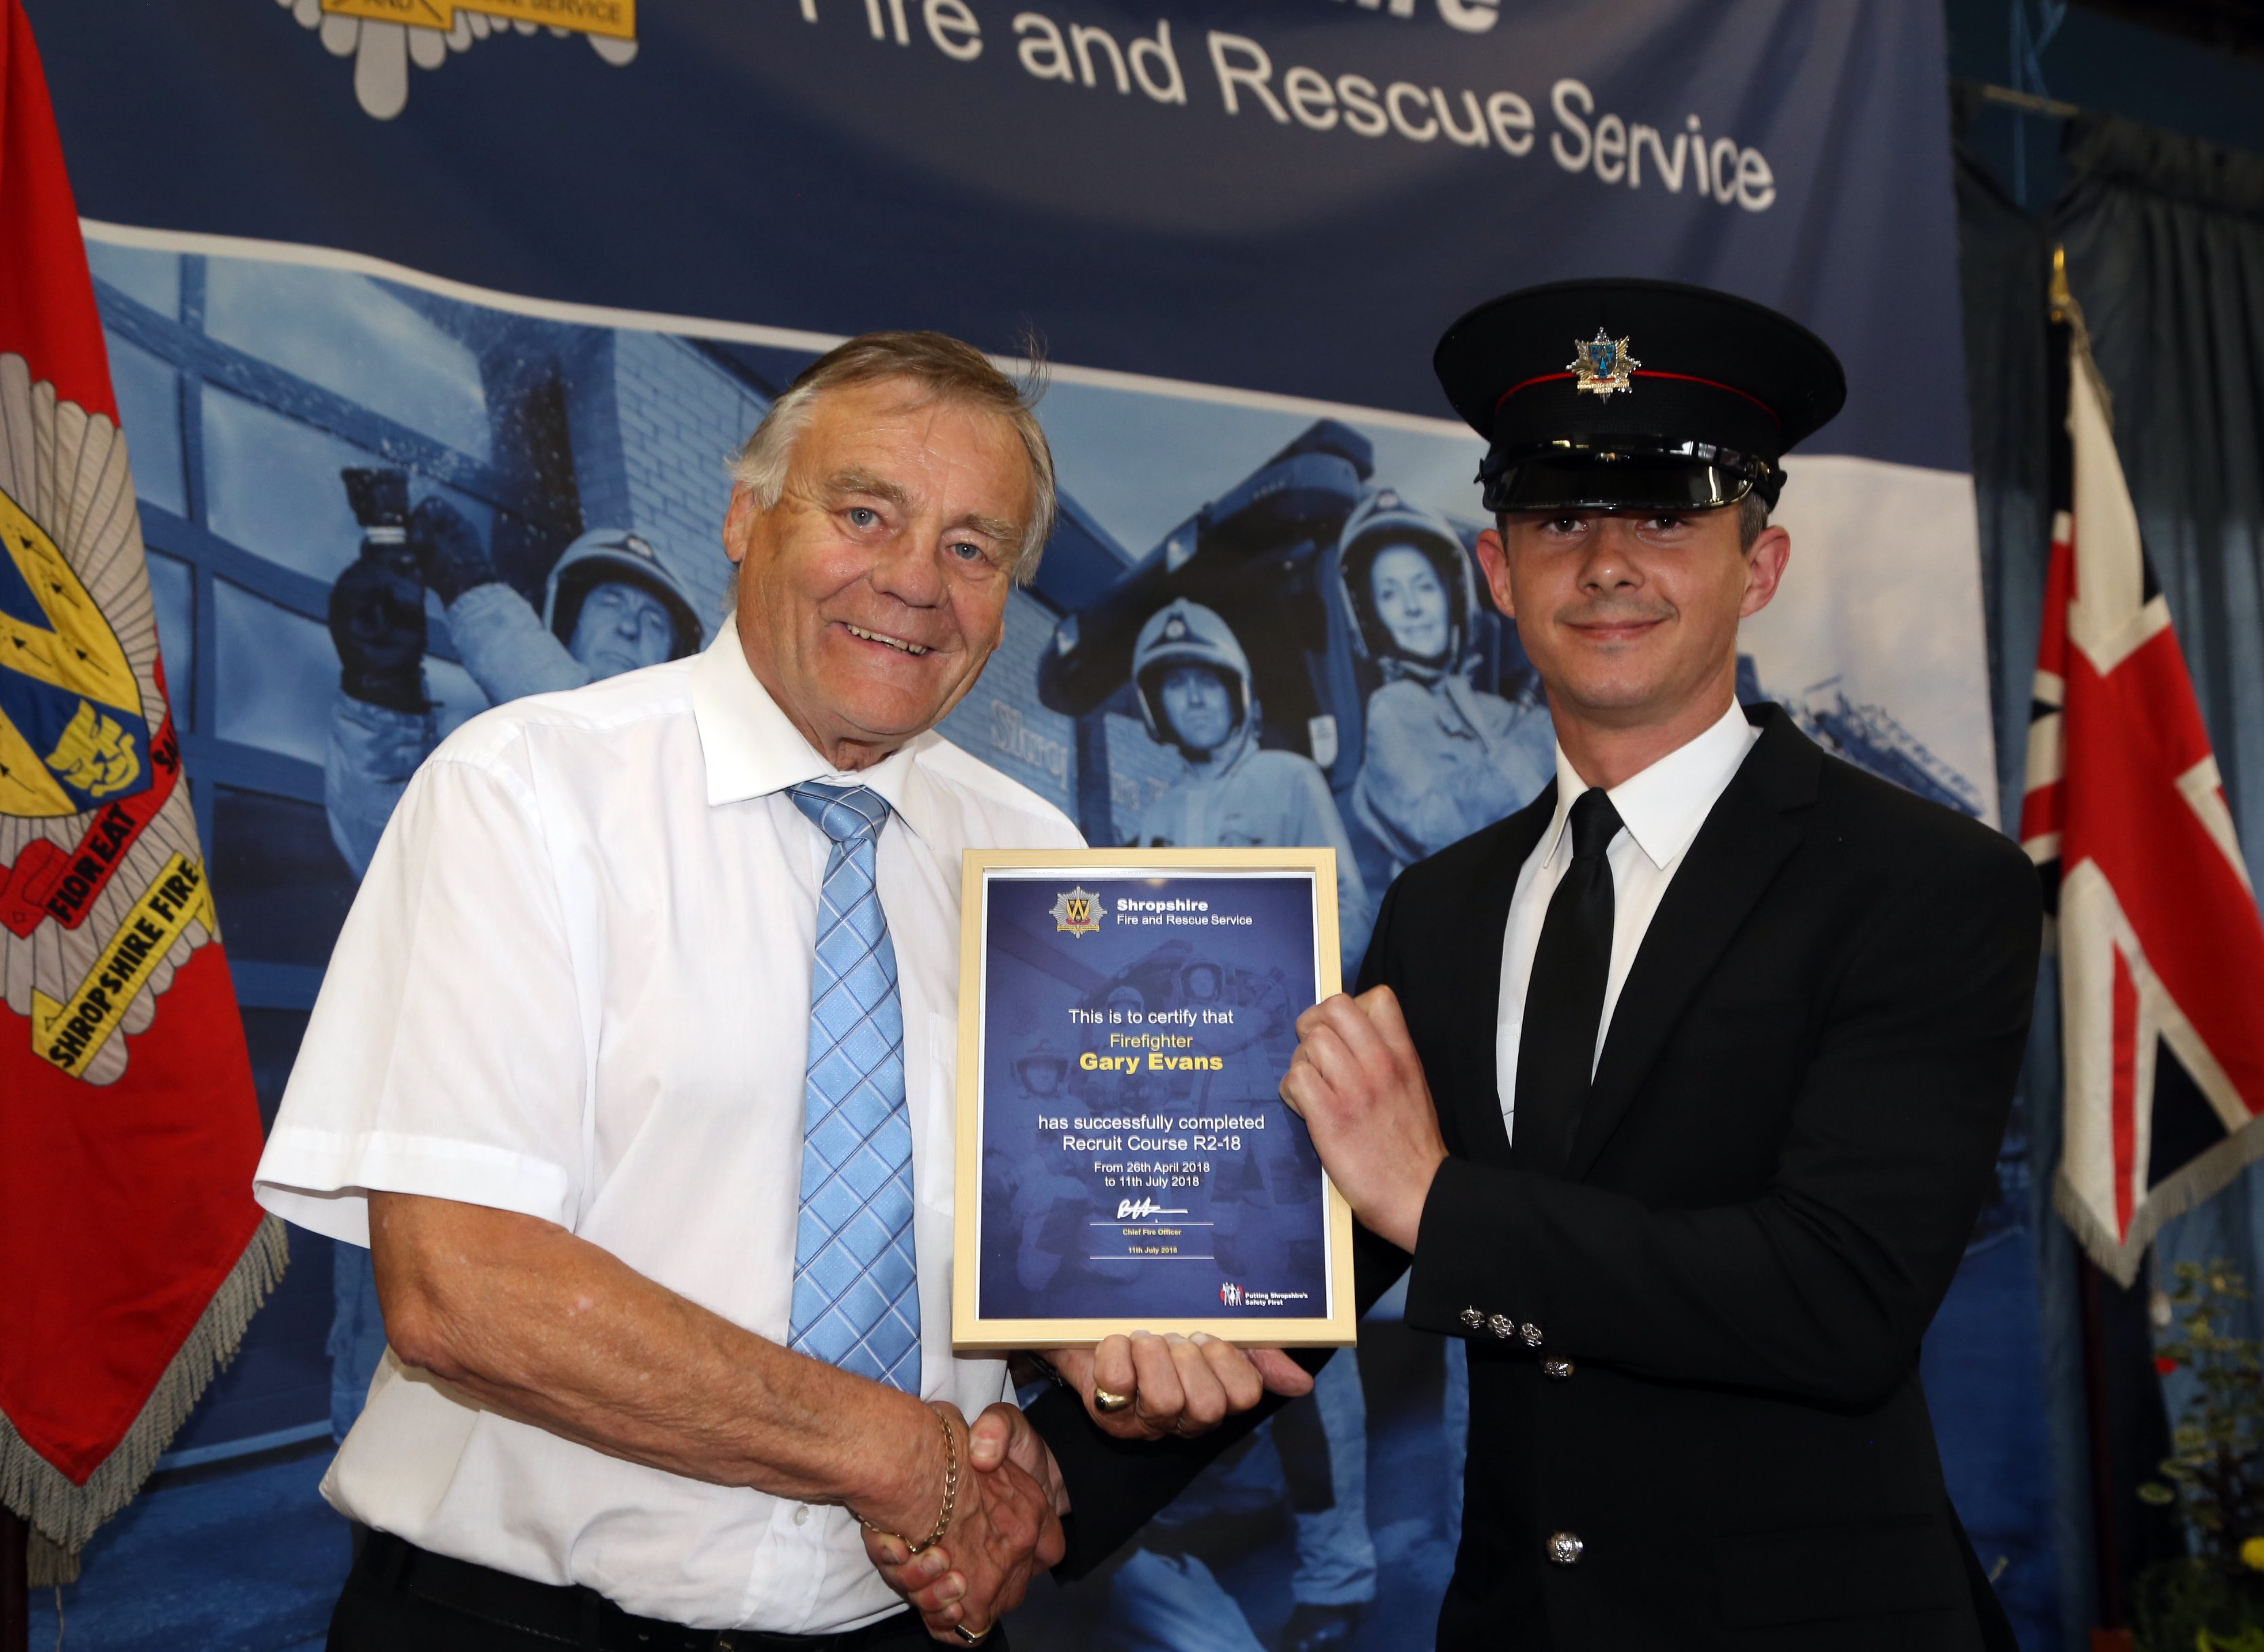 Shropshire and Wrekin Fire Authority chairman, Councillor Eric Carter, presents recruitment certificates to firefighters. Gary Evans also won the instructors' award